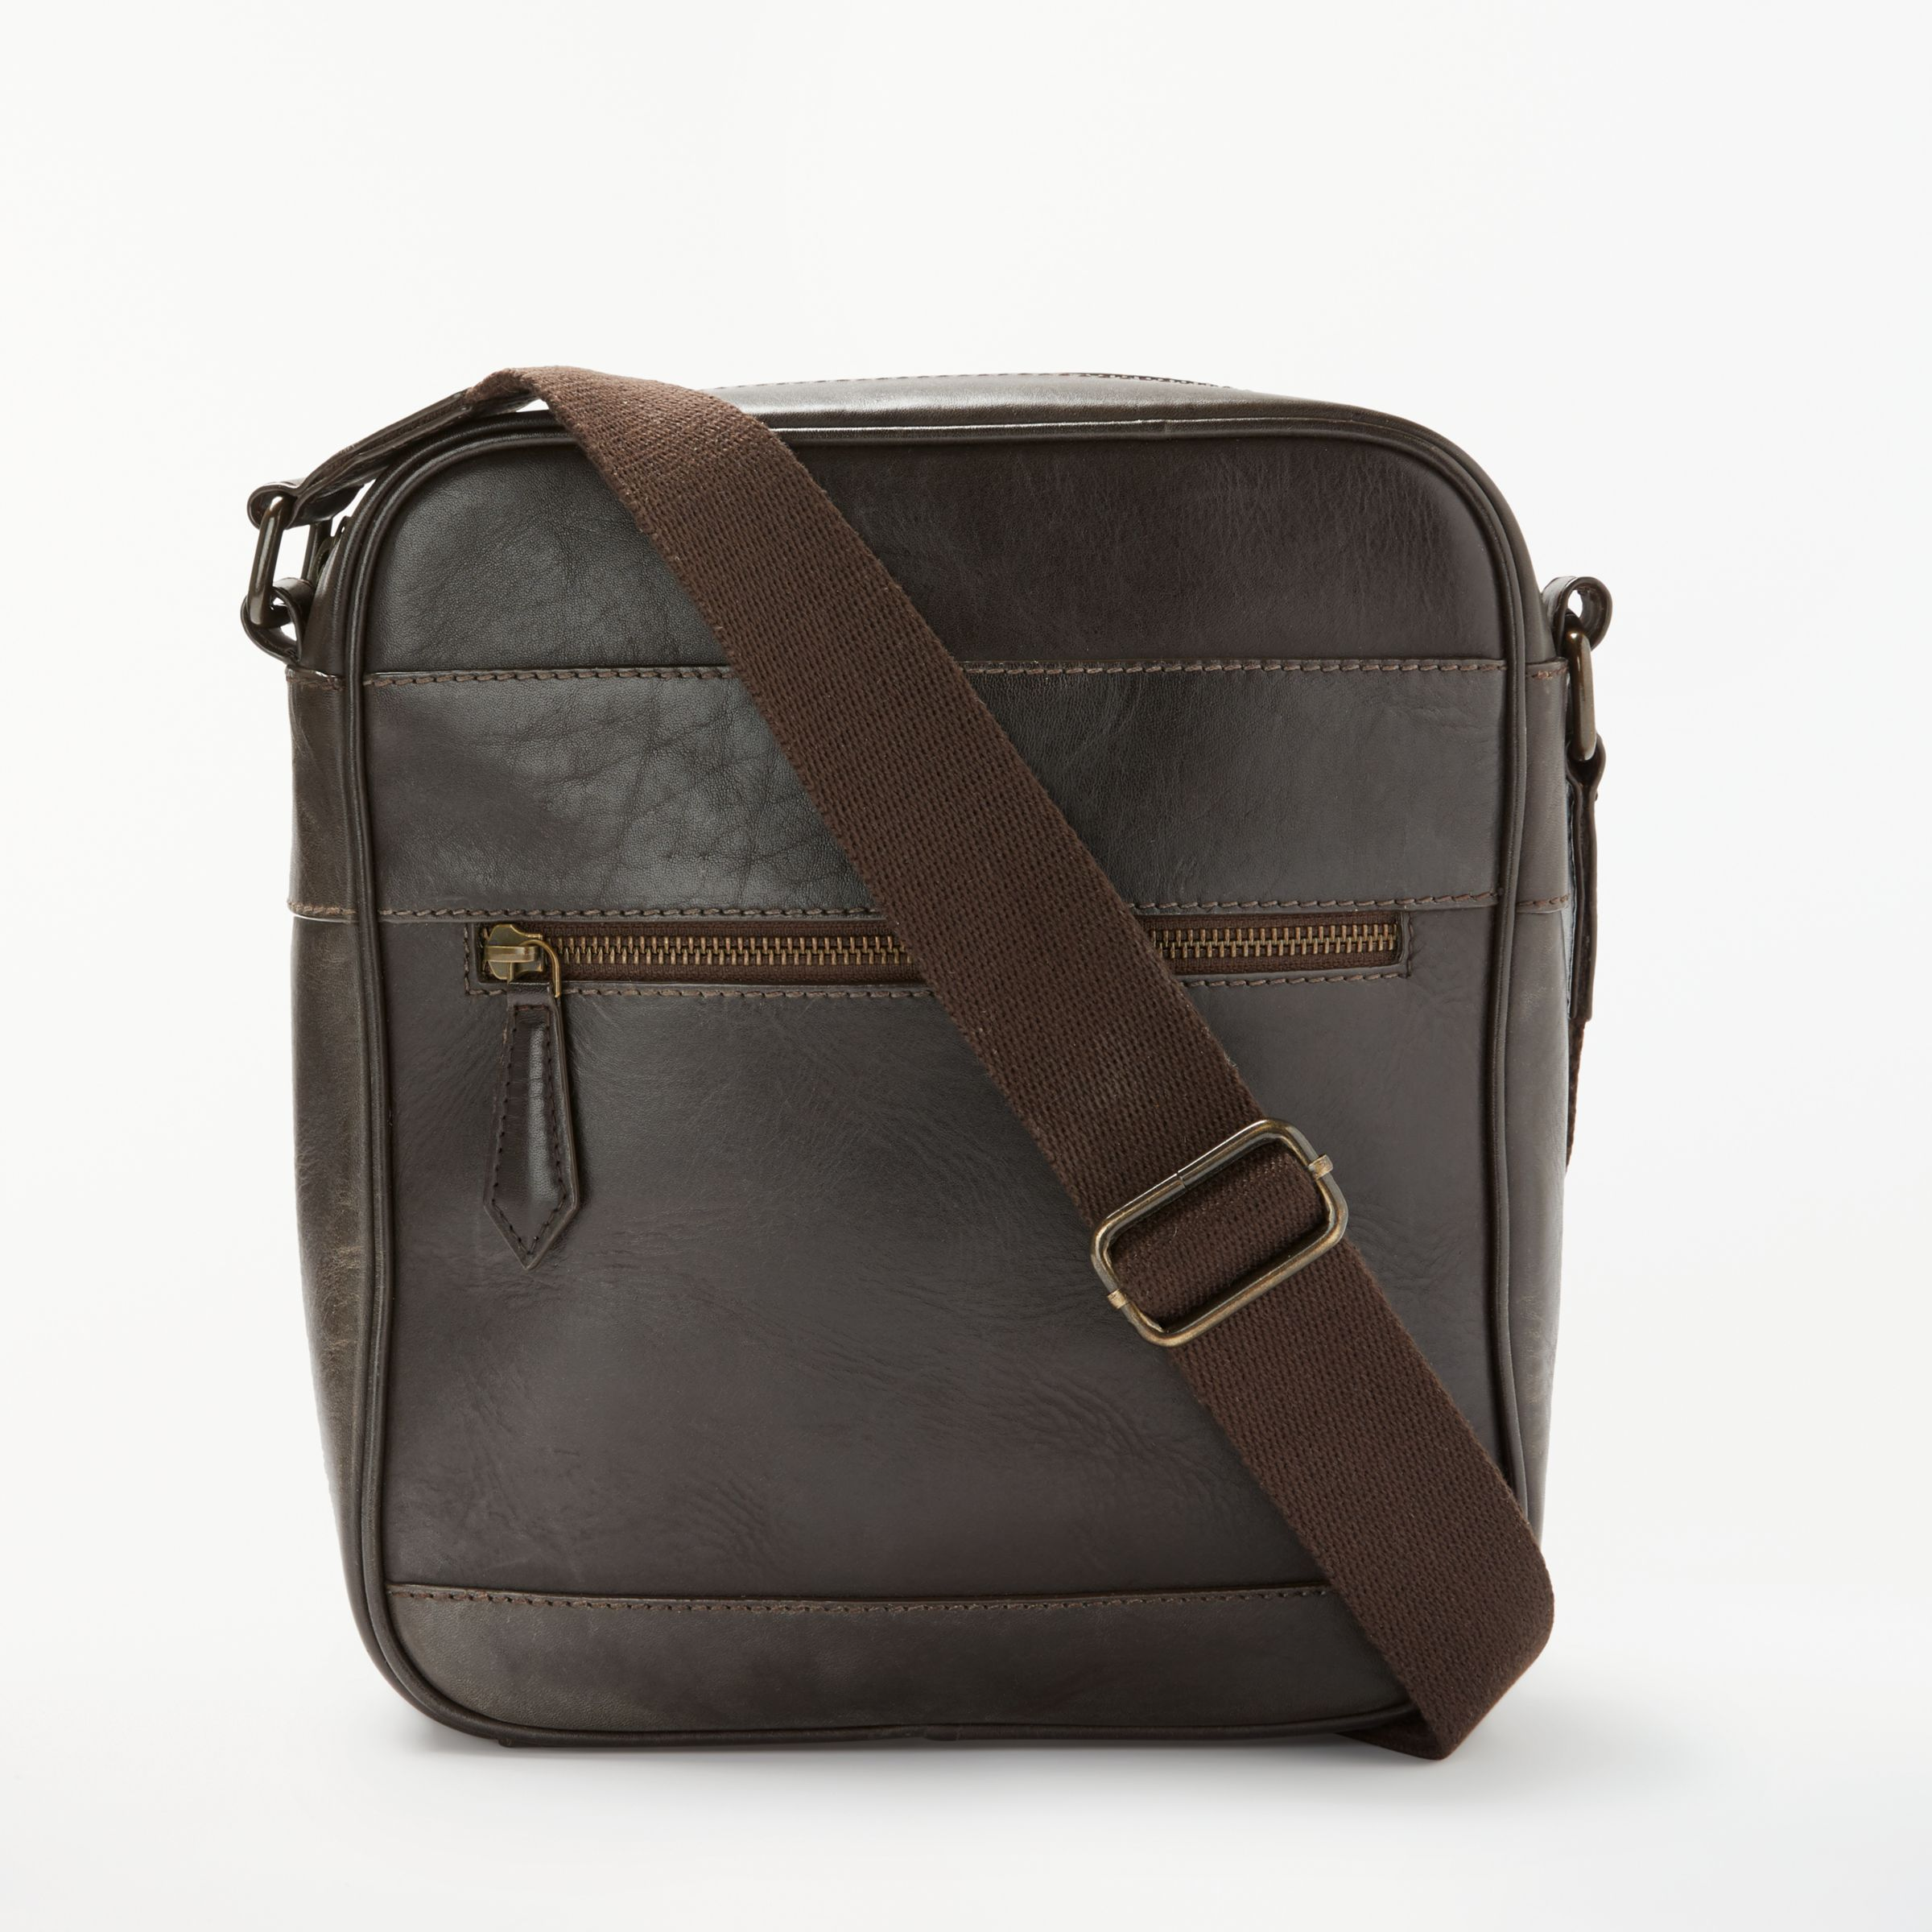 0c1c59ebfa John Lewis & Partners Milan Leather Reporter Shoulder Bag, Brown at John  Lewis & Partners